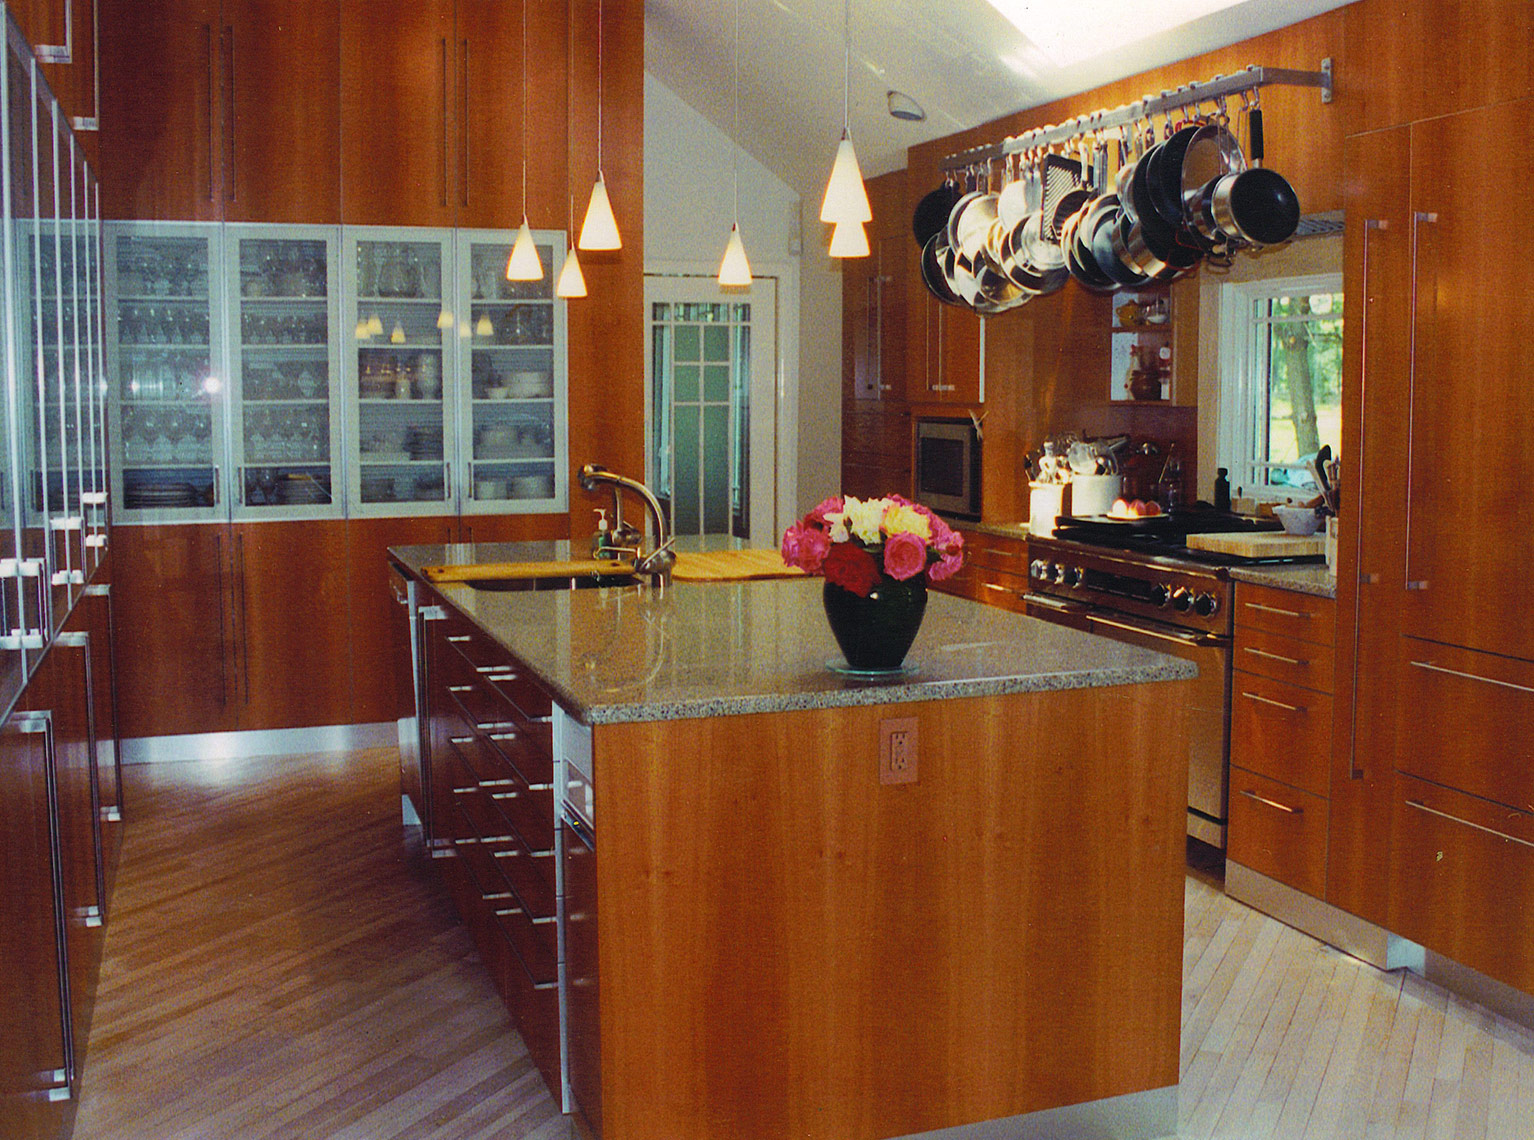 custom kitchen cabinets- mercer county, nj-by birdie miller-itchen-Contemporary-Pear-Wood-Quartered-Custom-Cabinets--2